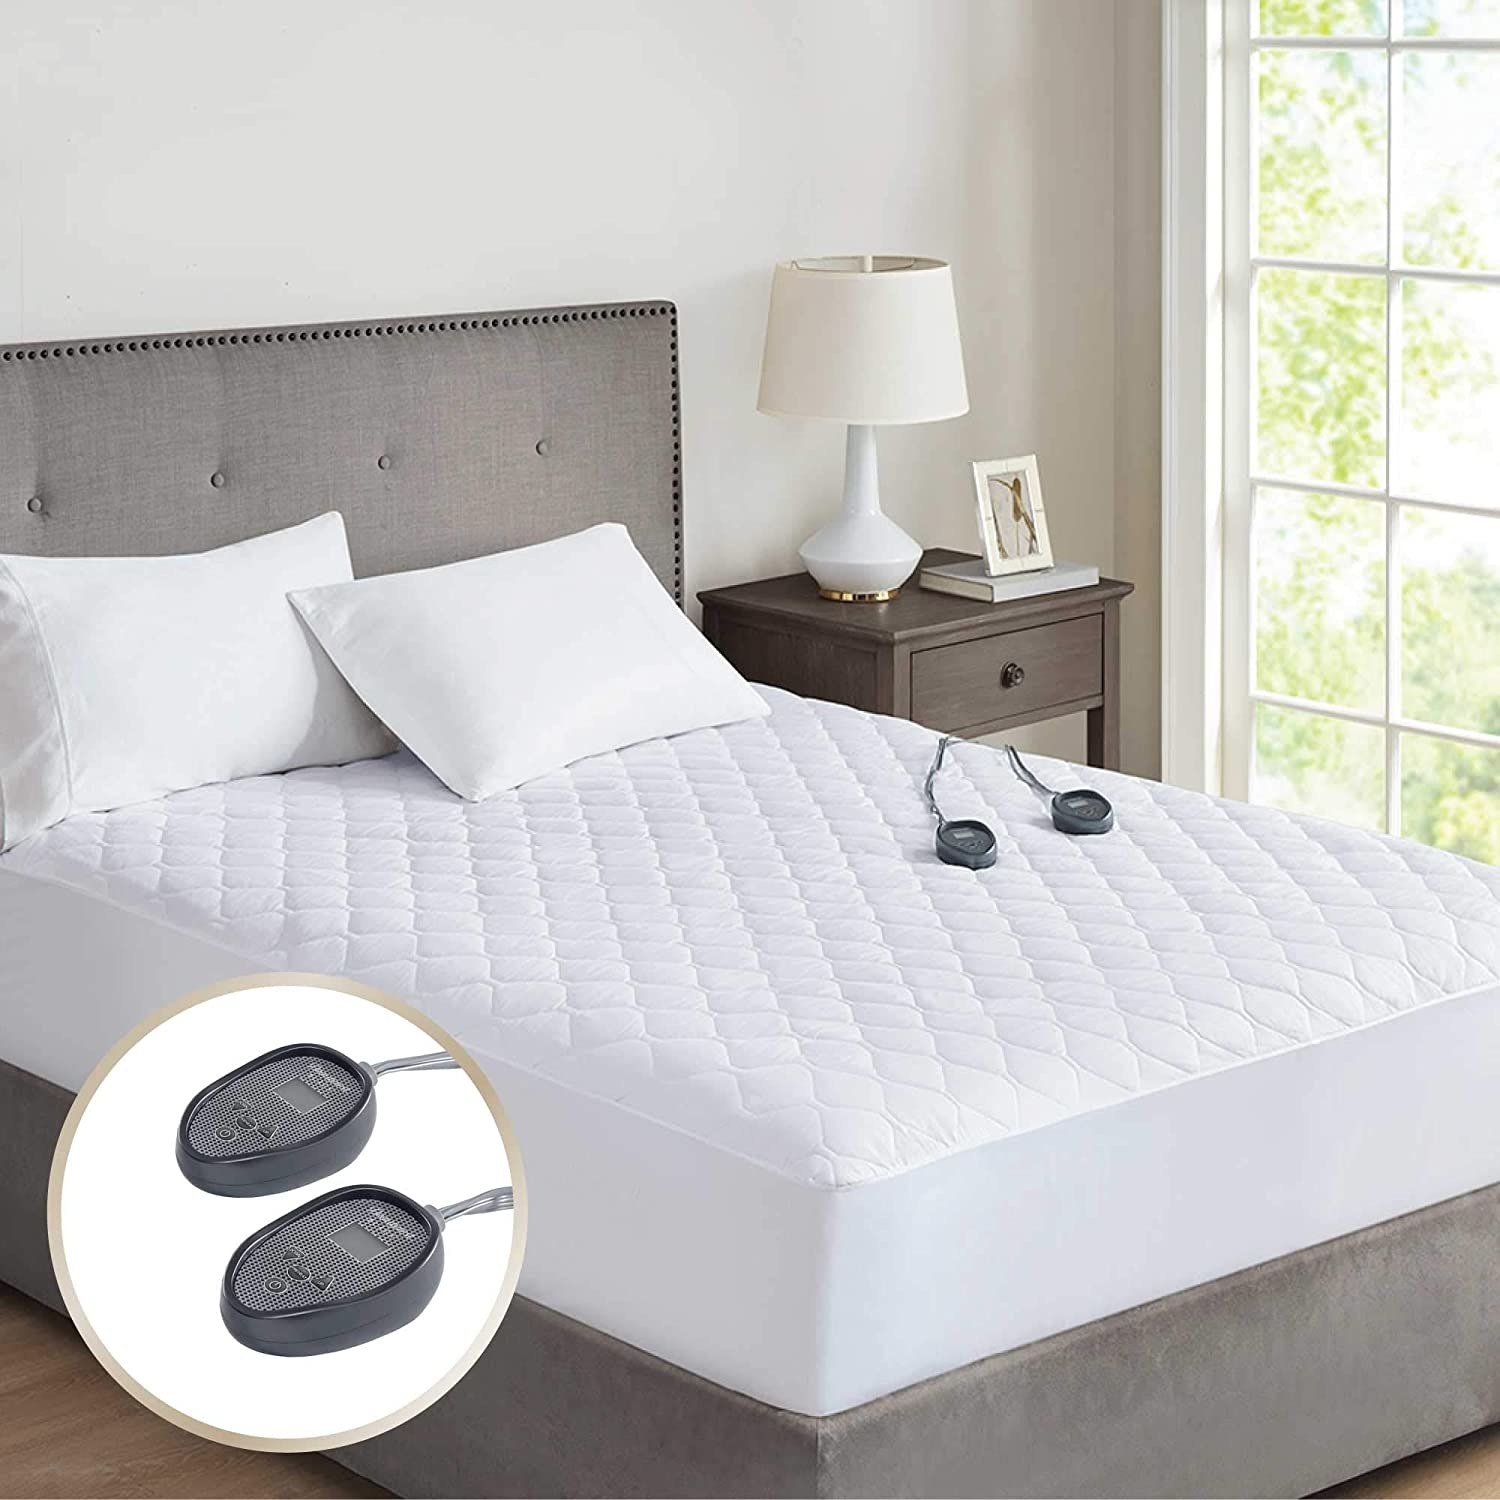 The heated mattress pad which has two controls